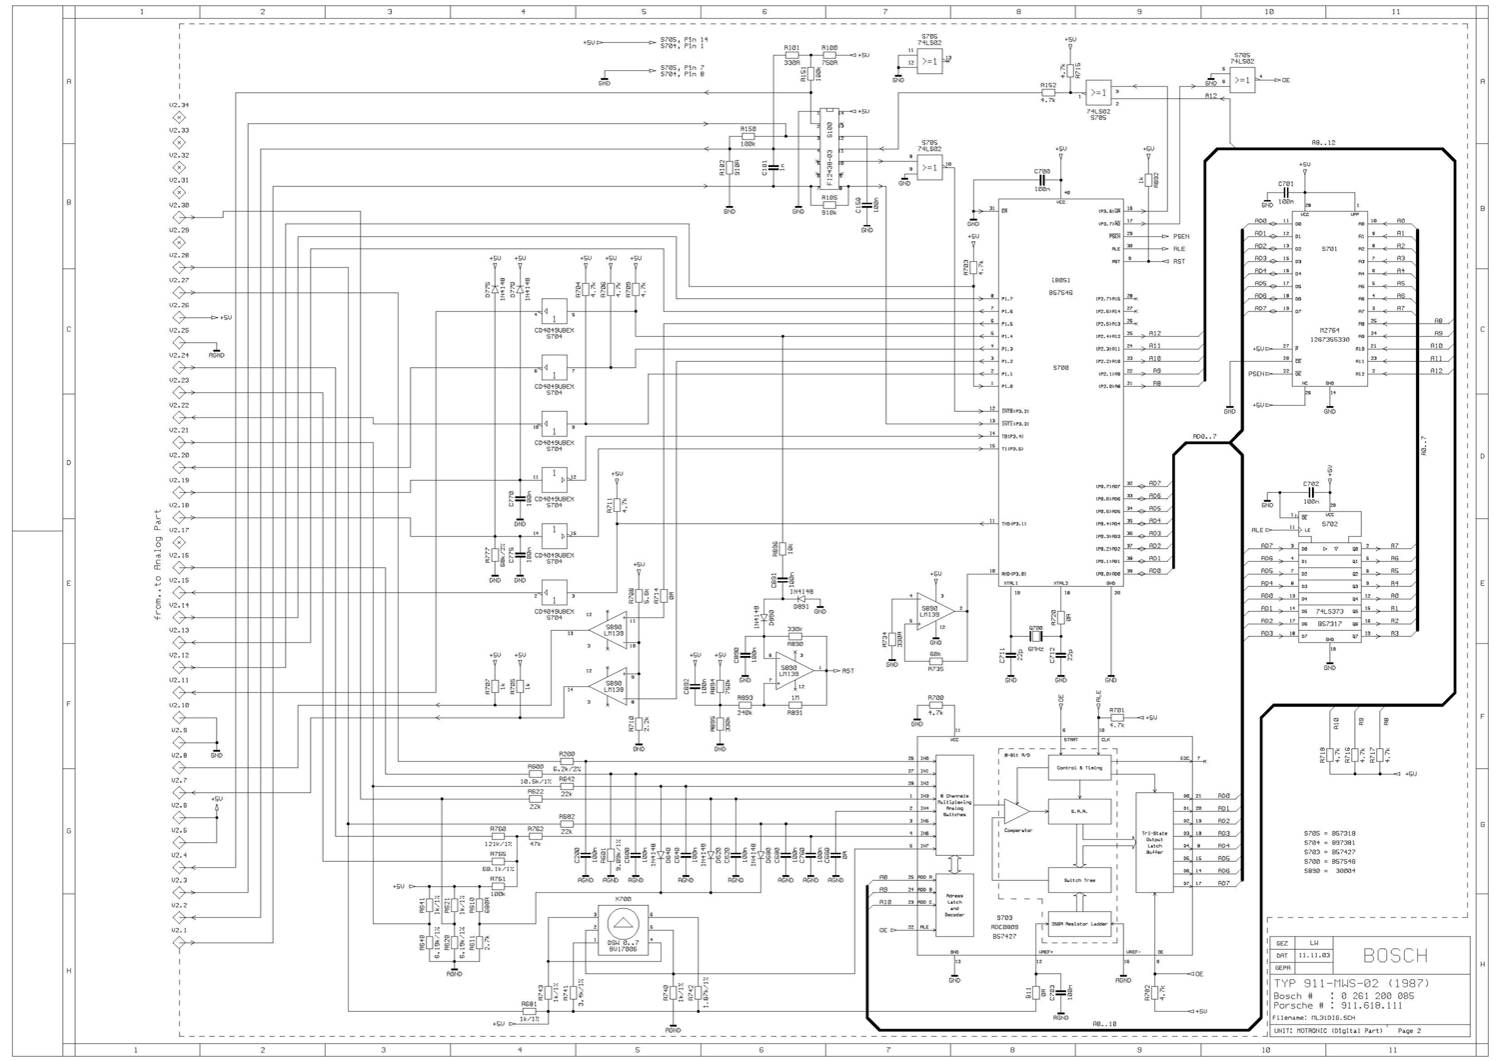 hight resolution of dme wiring diagram normally aspirated 944 porsche 944 dme wiring diagram porsche 944 dme wiring diagram